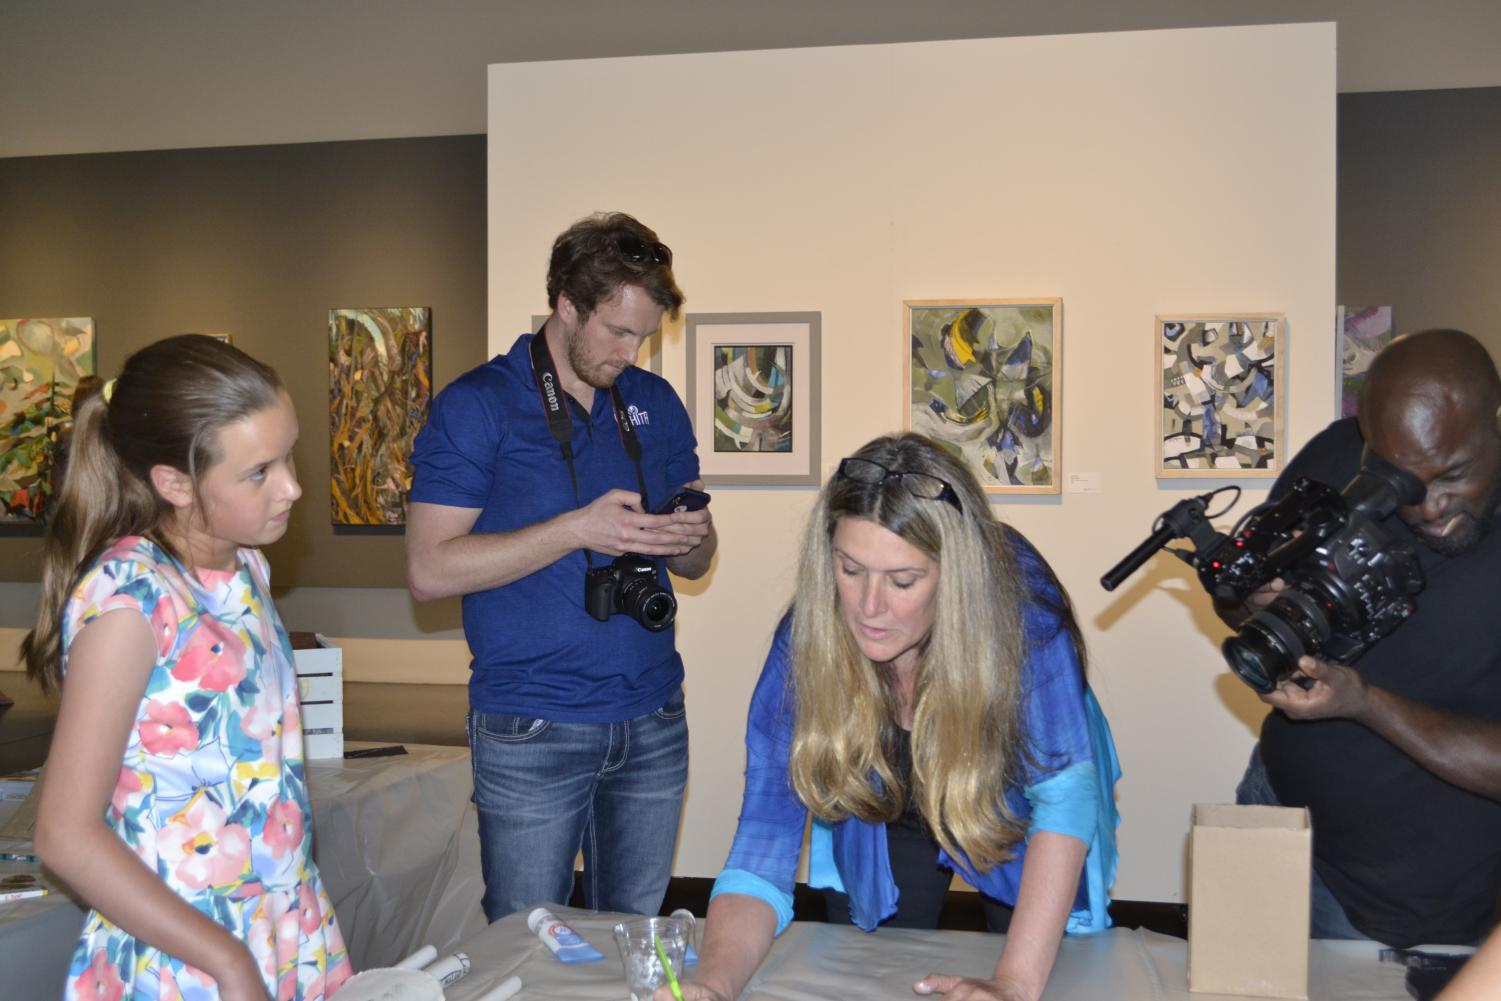 Wichitans Sophie Santo and Susie Santo participate in the public art event hosted by CityArts on Friday Aug. 23 as part of the cross-country #AmericART2019 documentary.